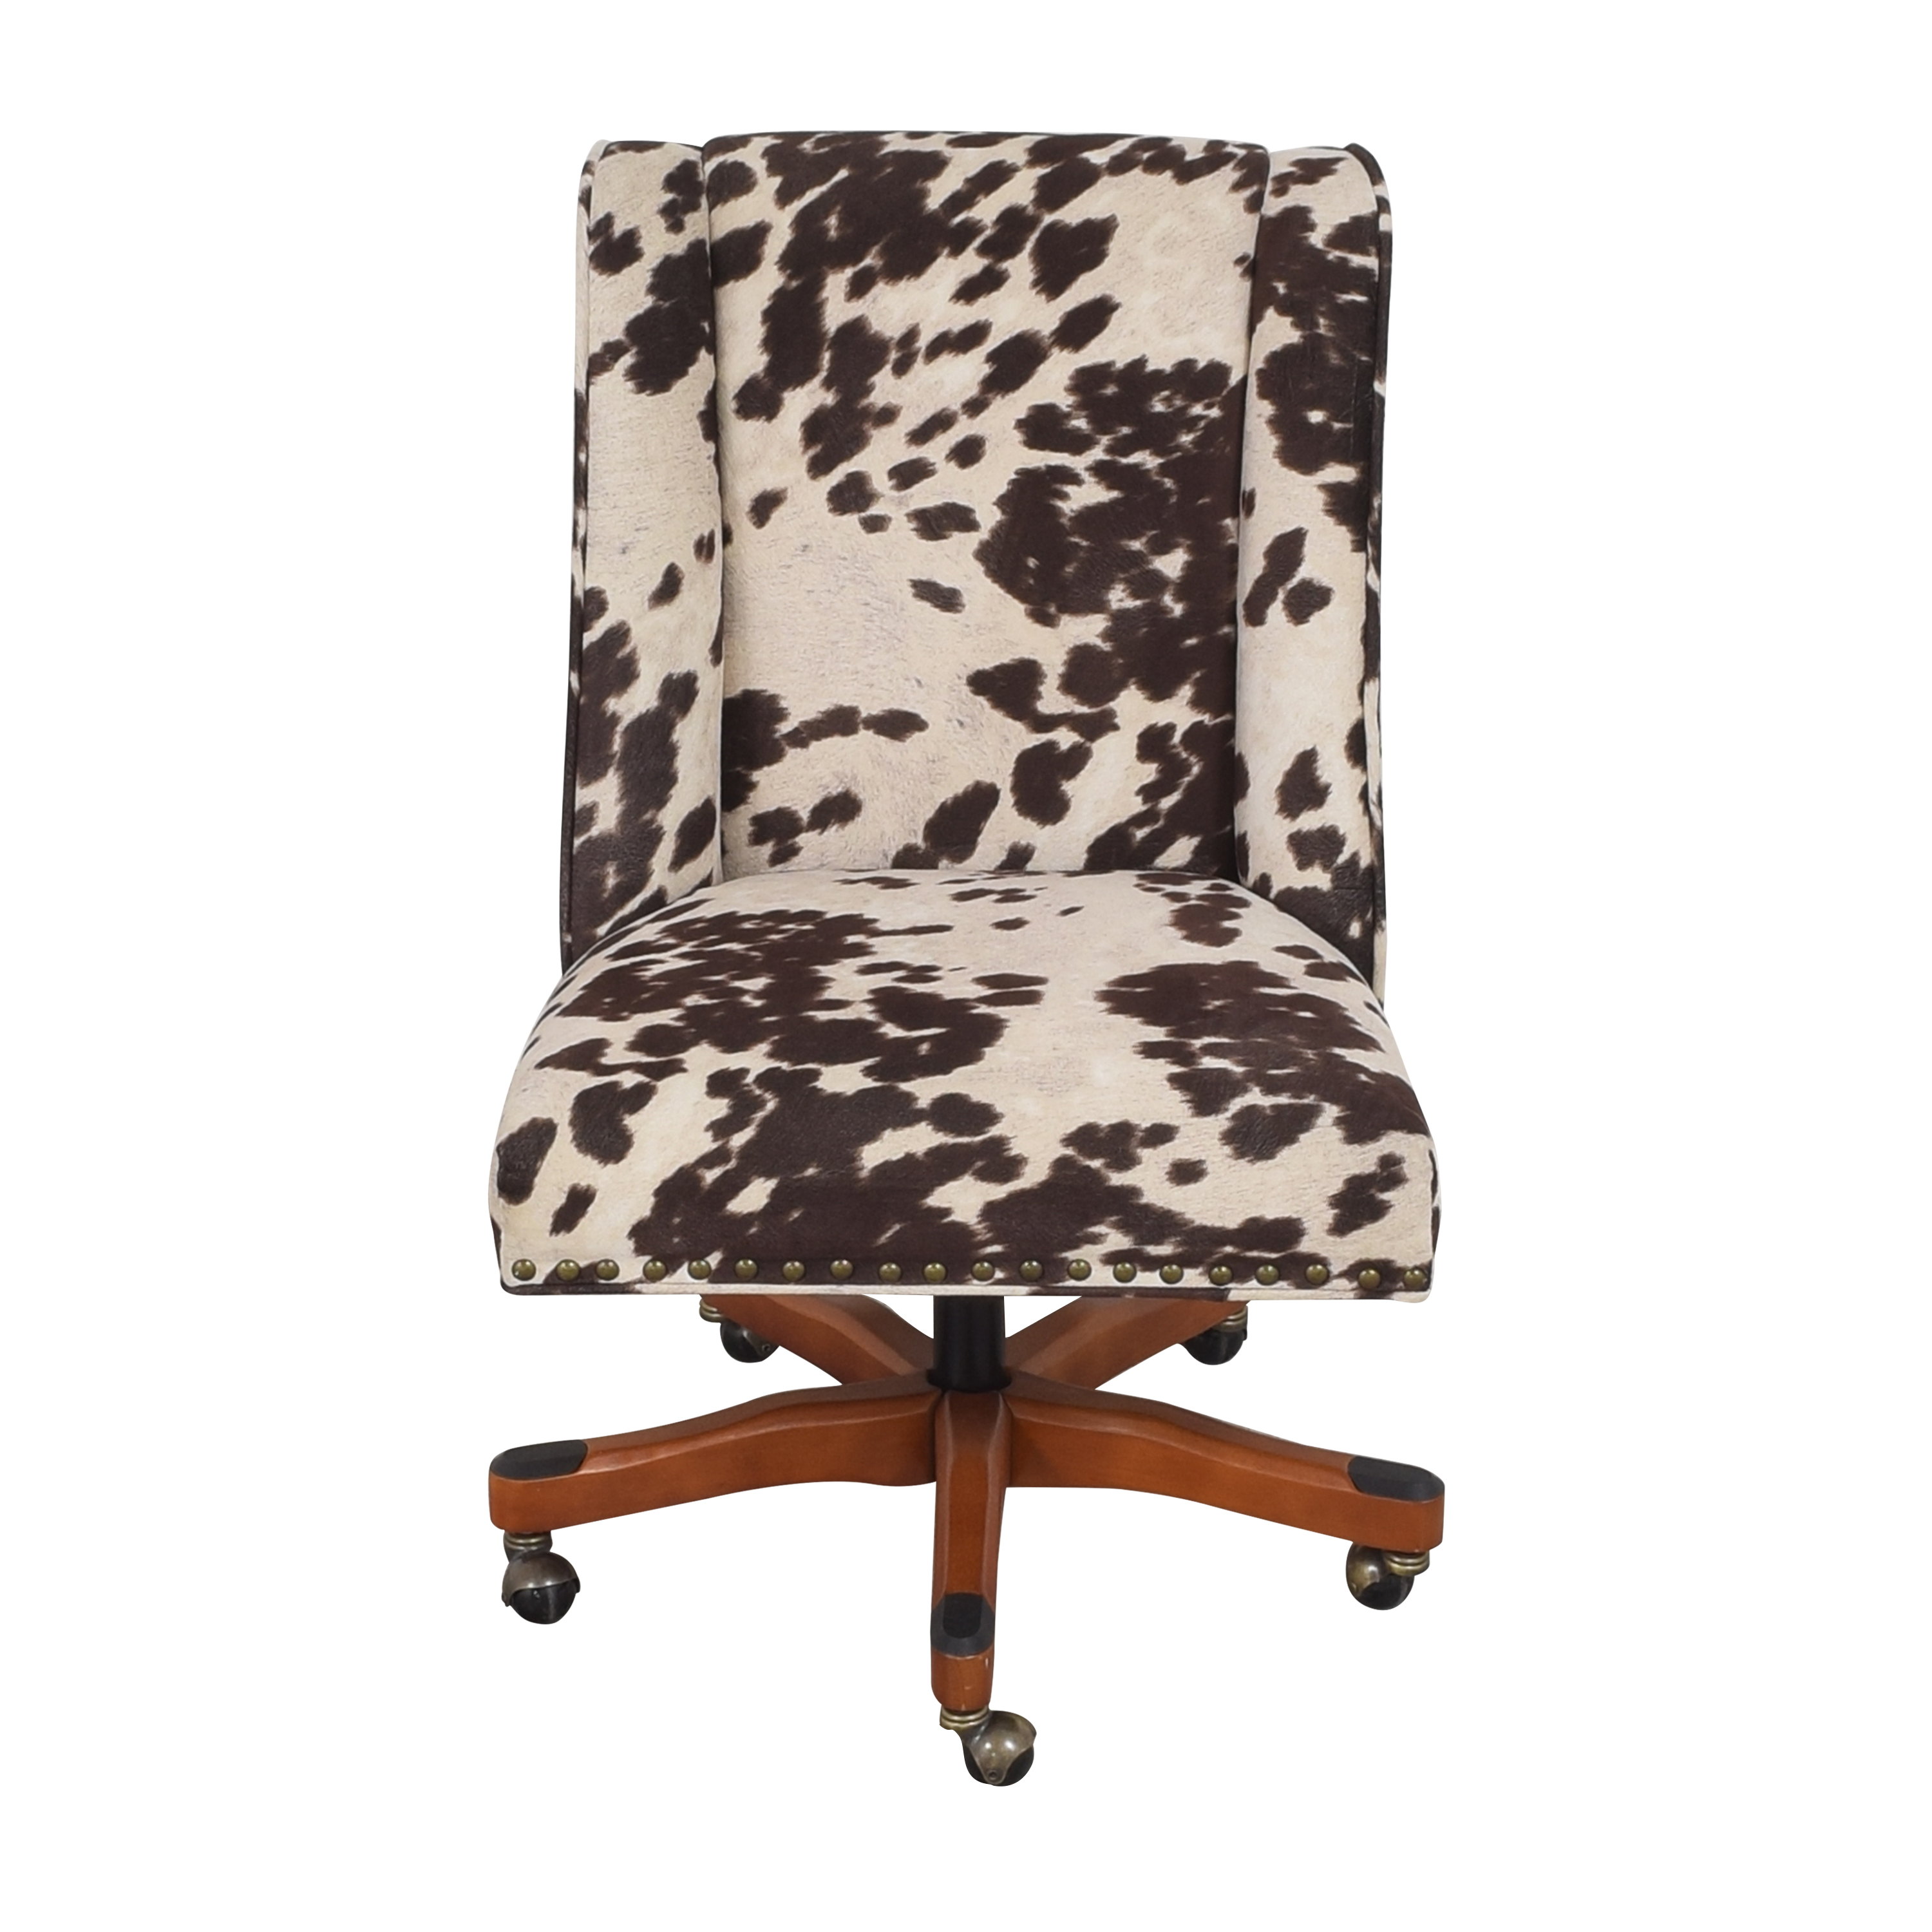 Linon Home Decor Linon Home Decor Wells Upholstered Swivel Office Chair ct